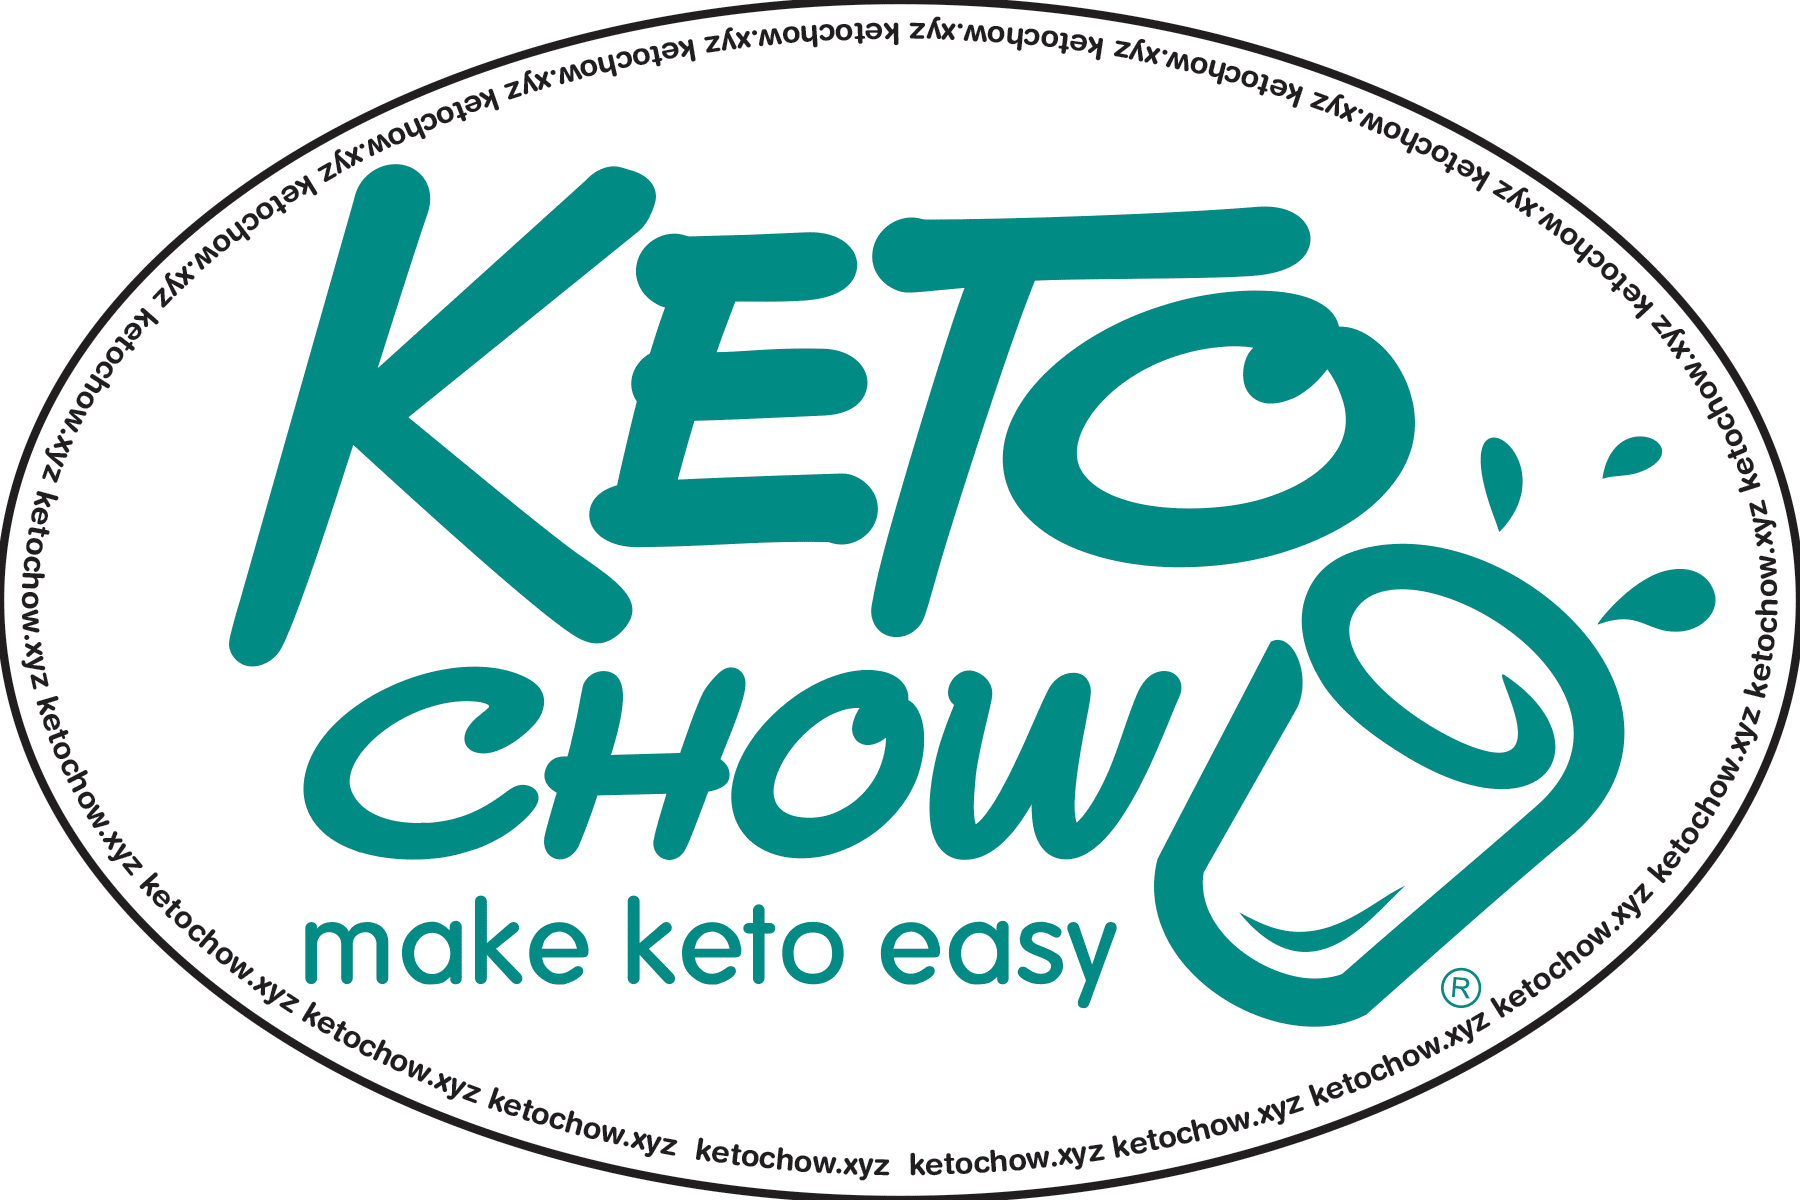 resources keto chow